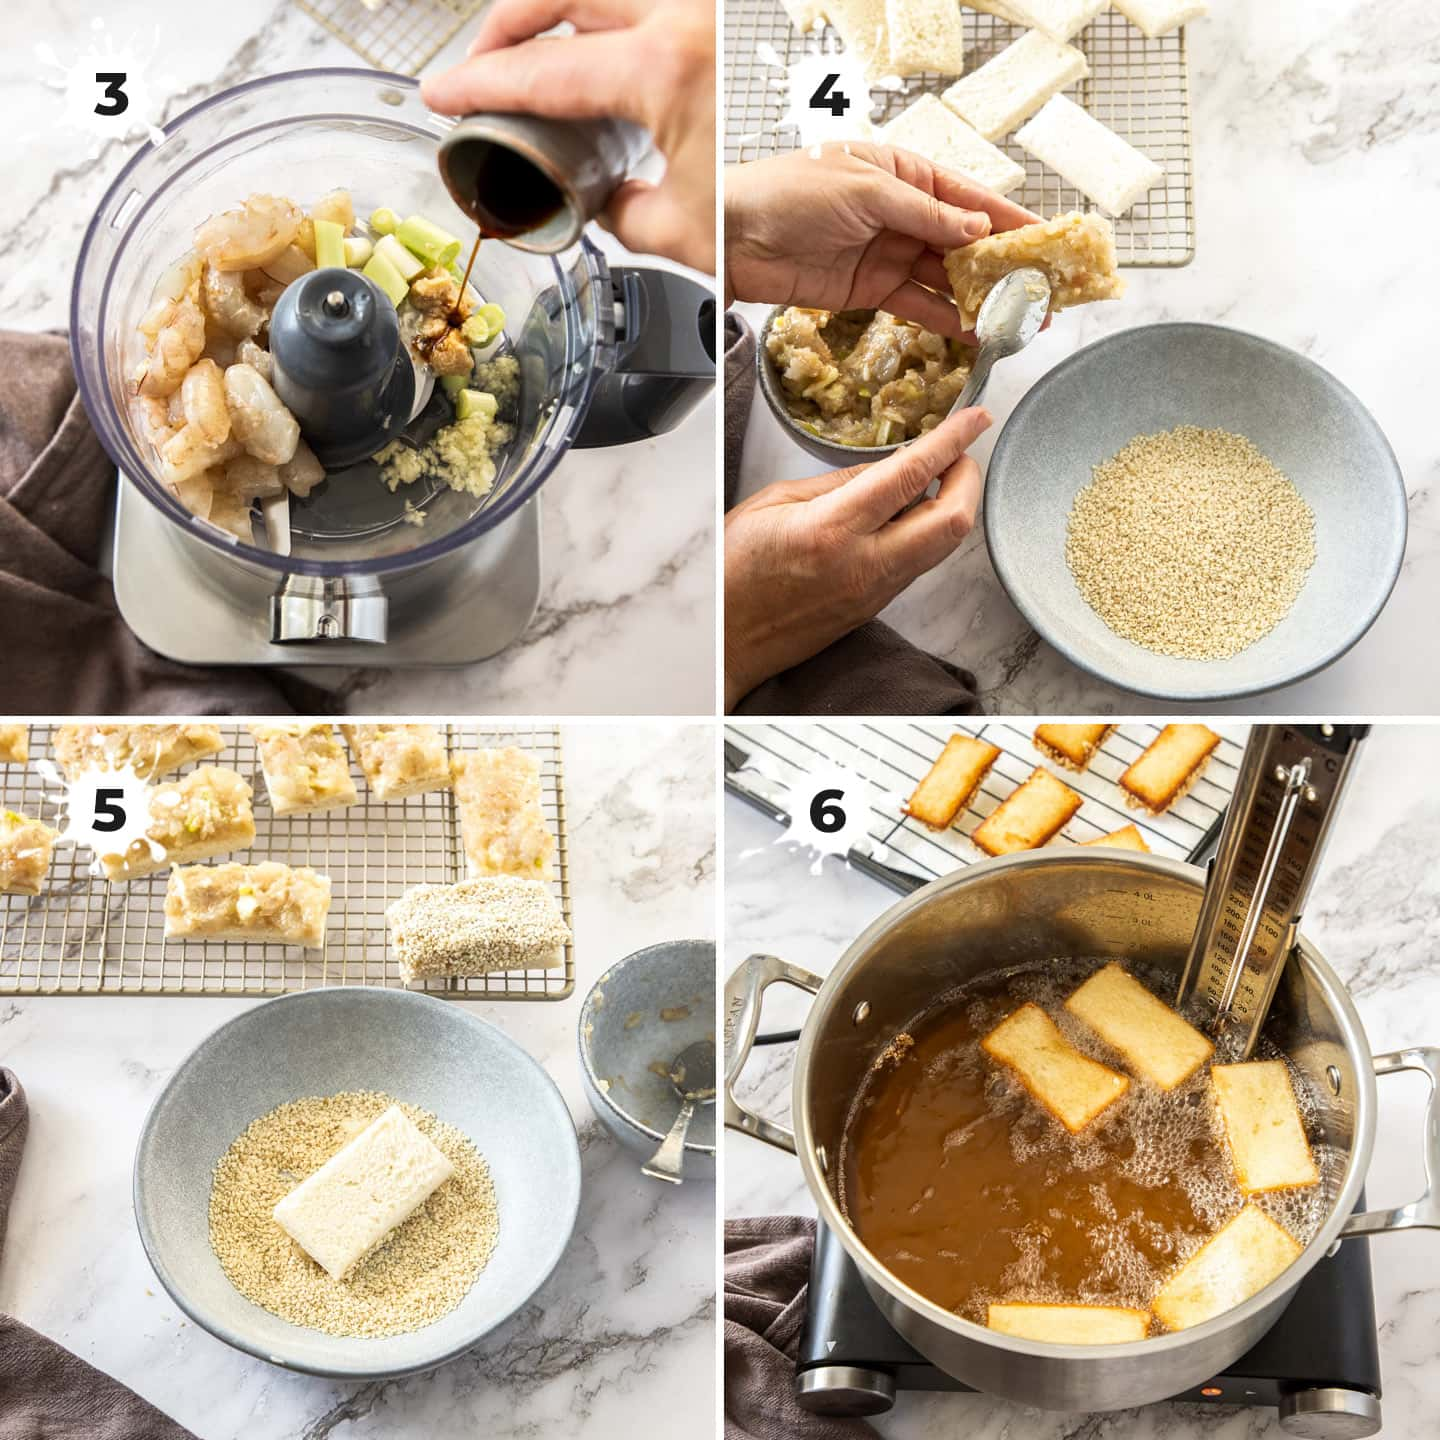 A collage of 4 images showing preparing and cooking prawn toast